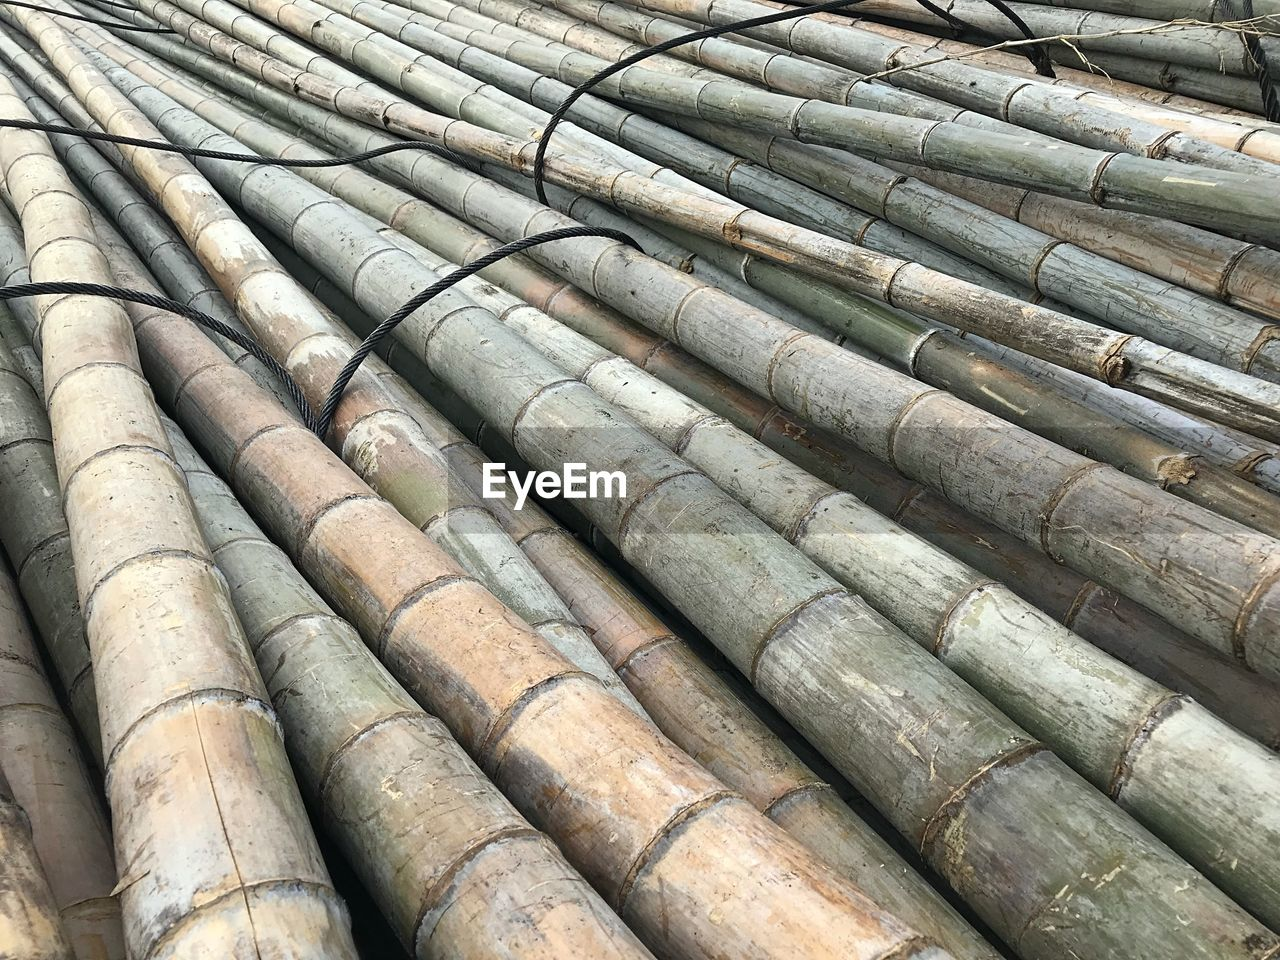 full frame, backgrounds, no people, pipe - tube, day, pattern, large group of objects, side by side, high angle view, close-up, outdoors, in a row, detail, repetition, abundance, roof, bamboo - material, stack, nature, sunlight, roof tile, bamboo - plant